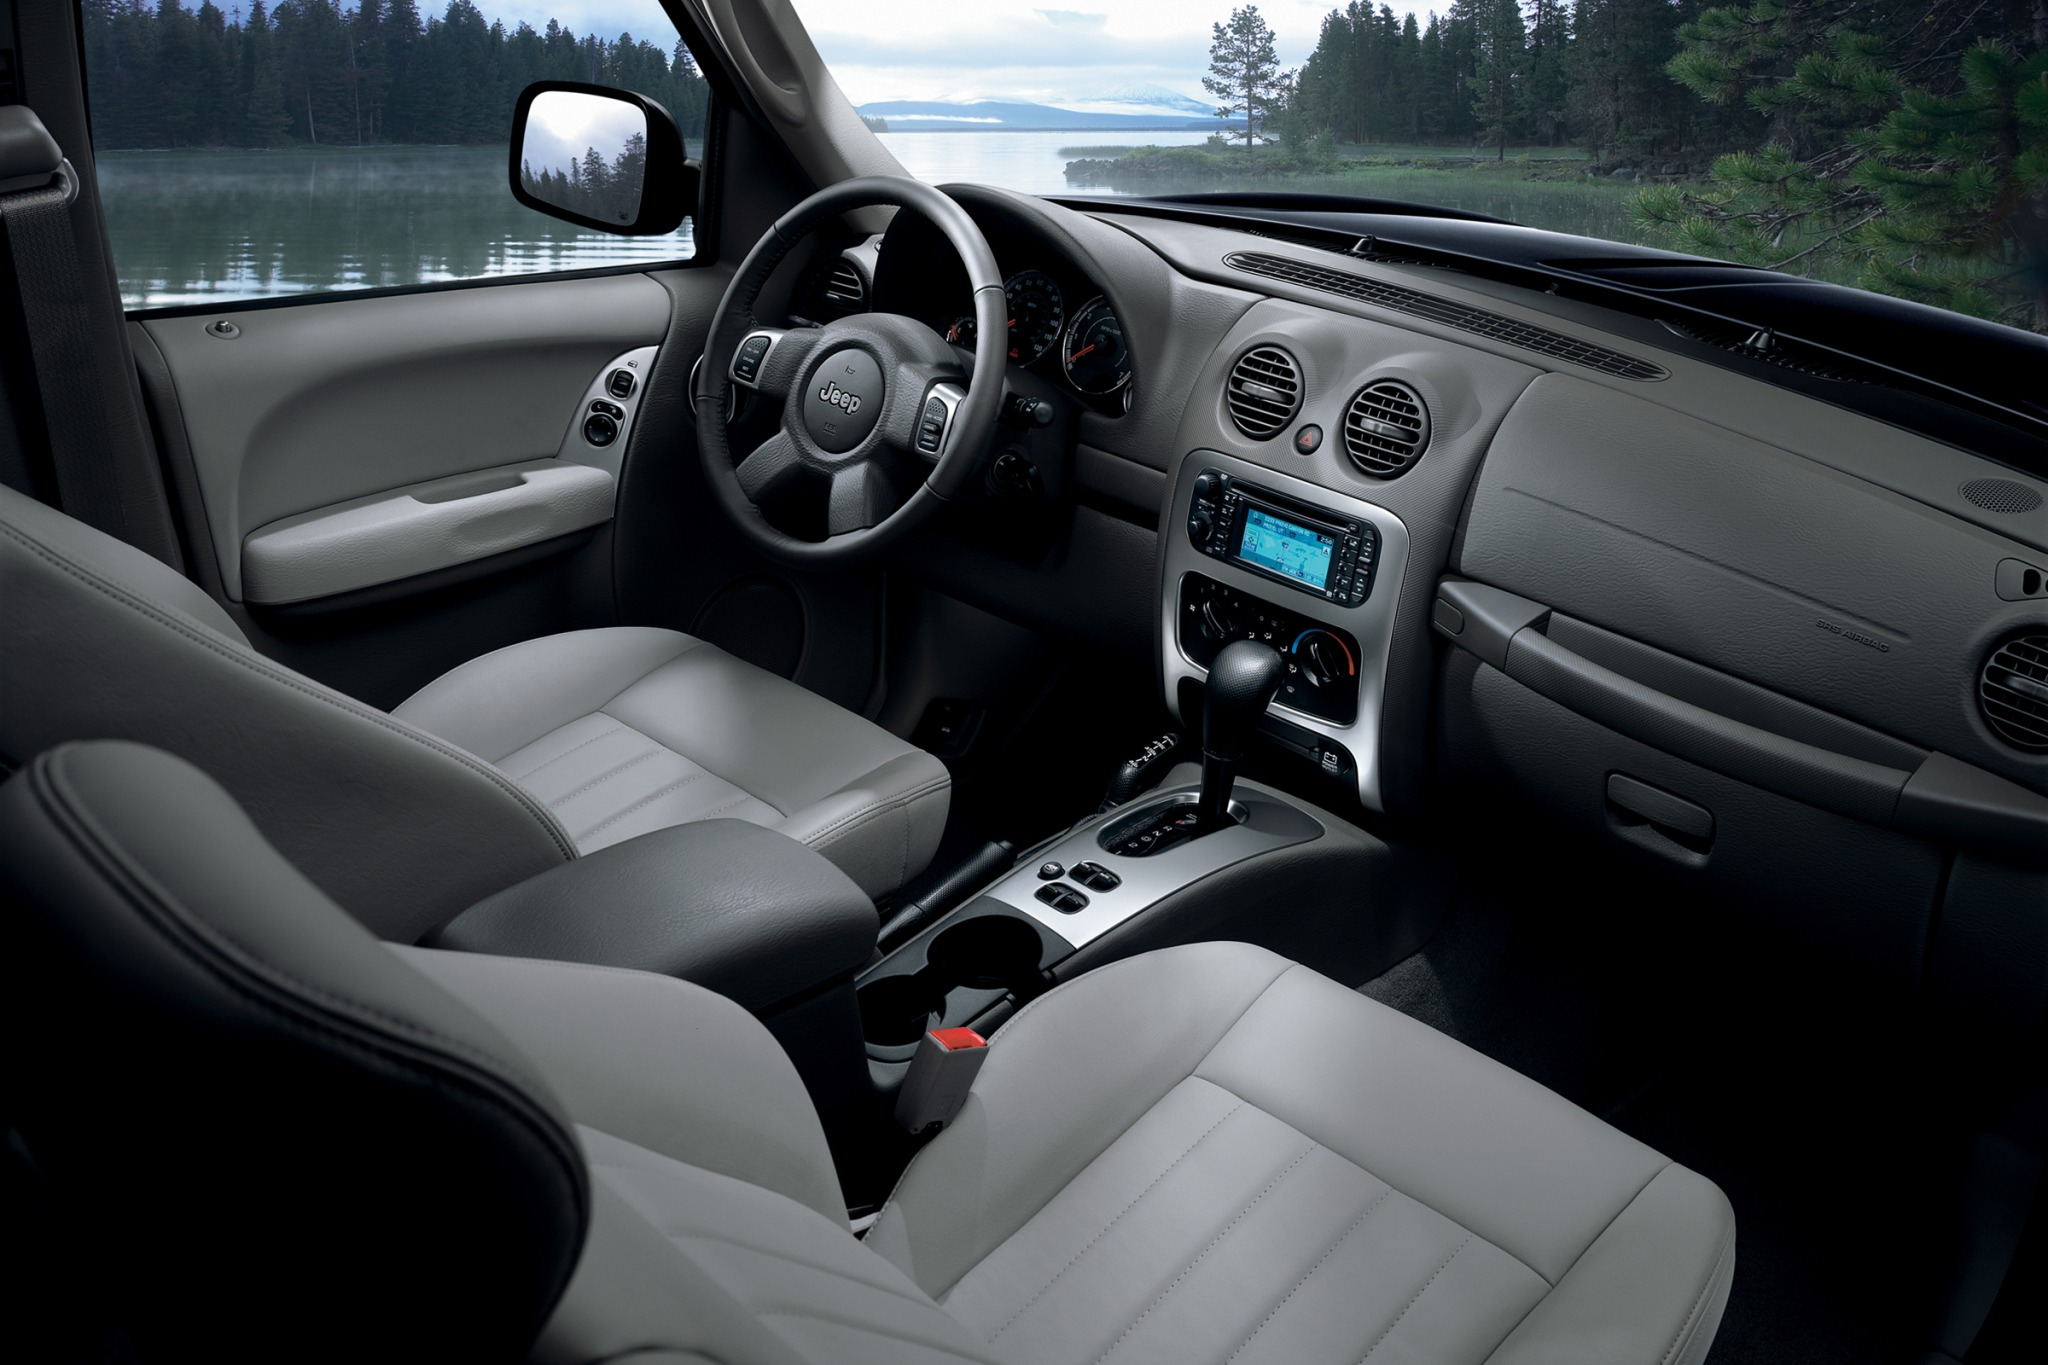 2007 Jeep Liberty Limited interior #8